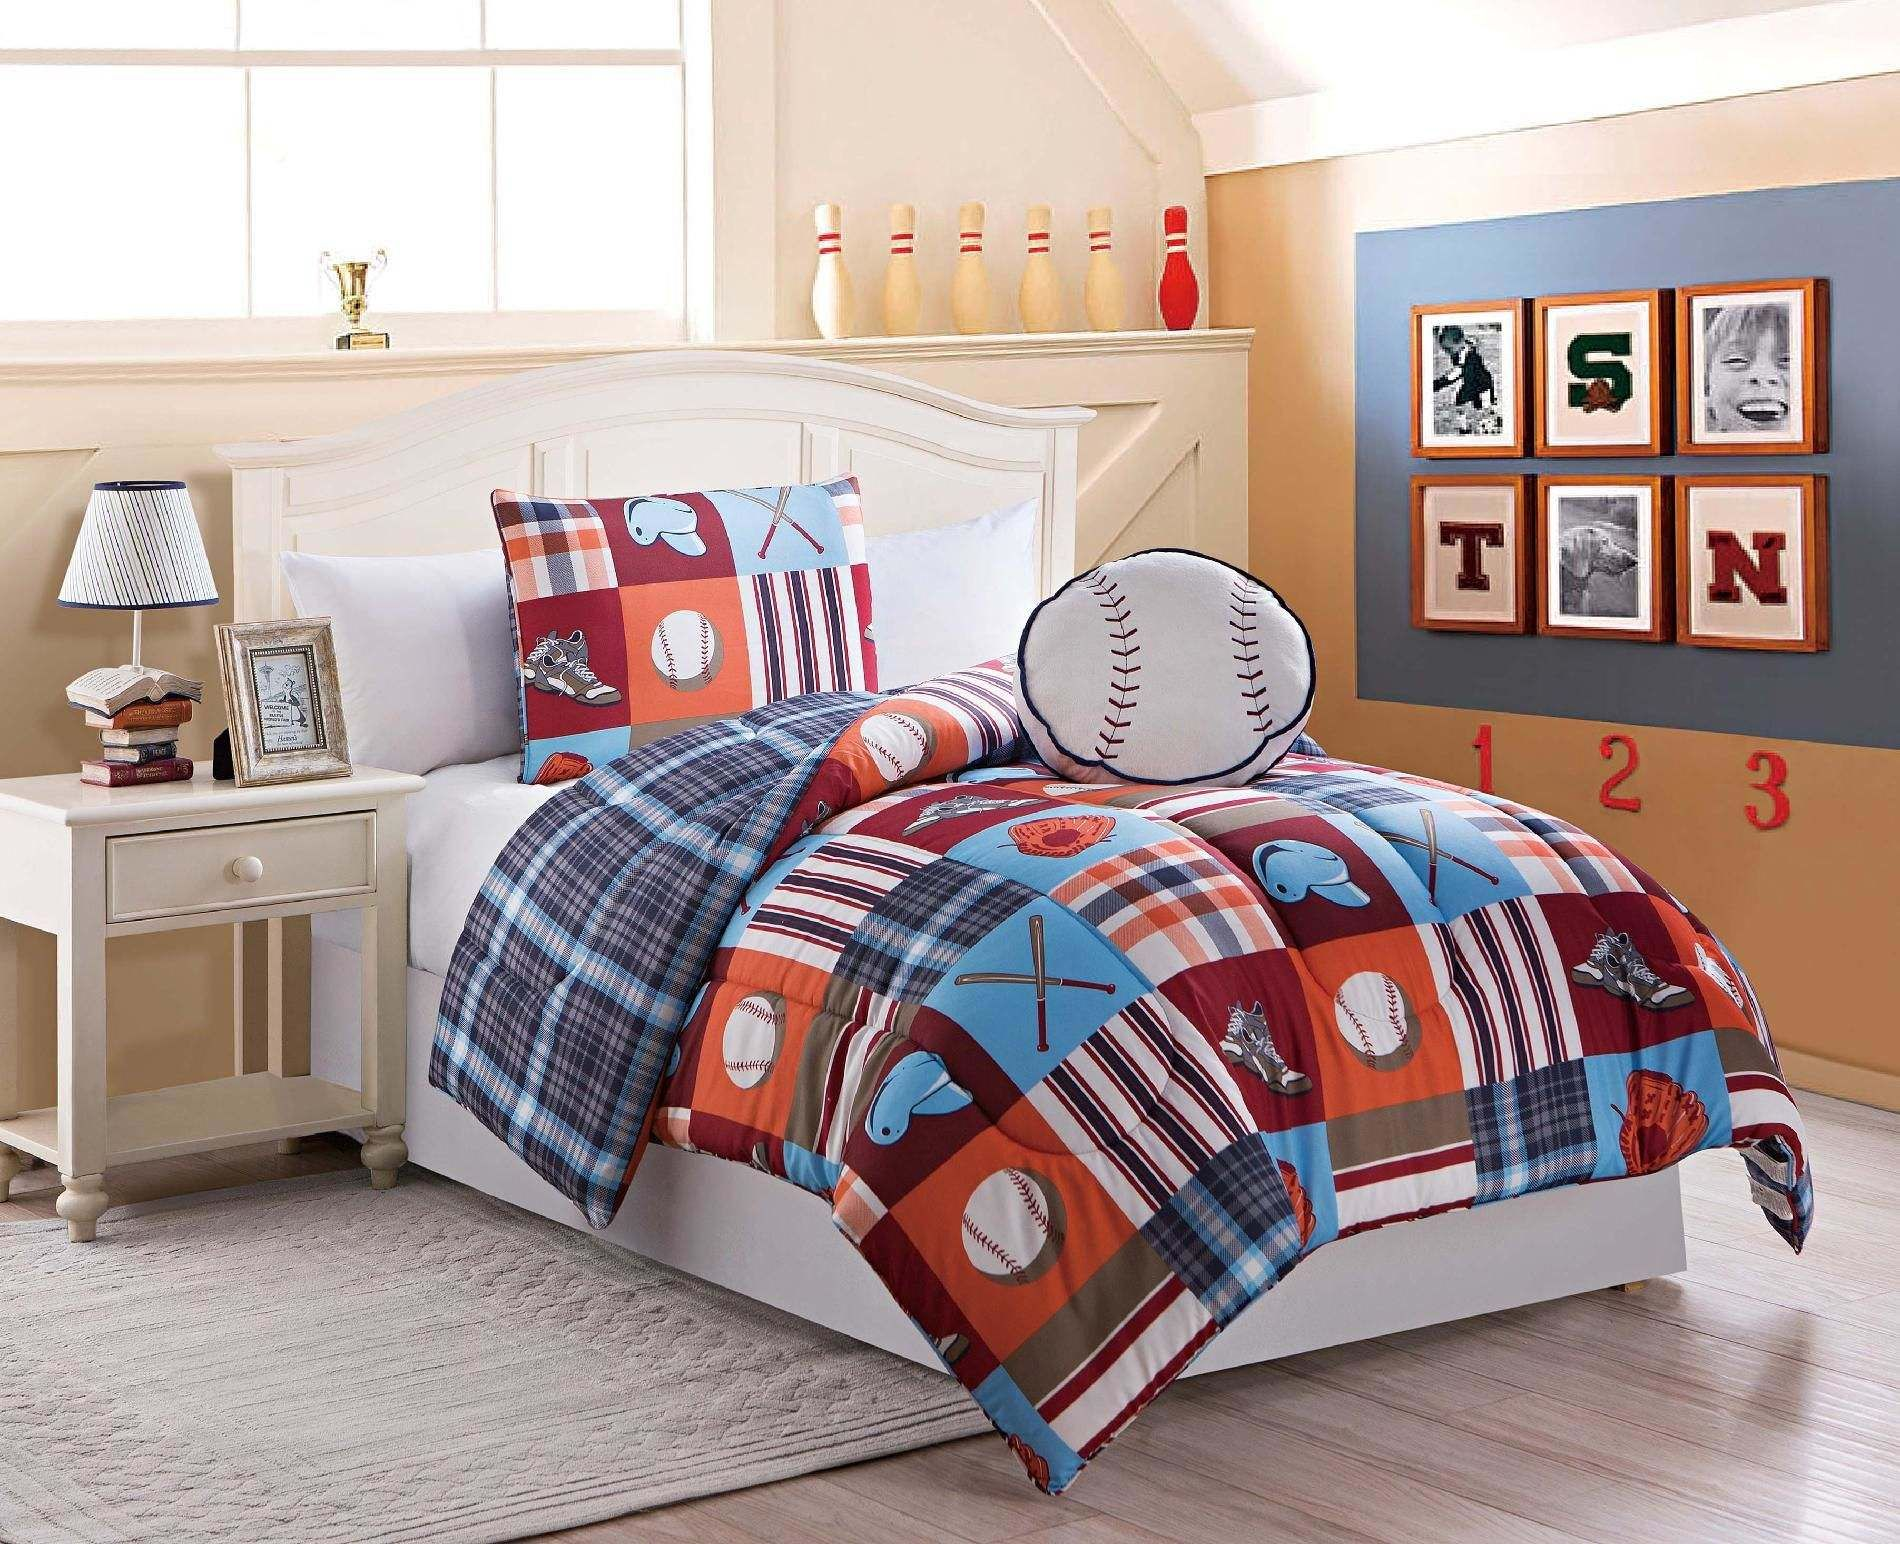 Pin by Aimee Beam on Boys bedroom | Twin comforter sets ...